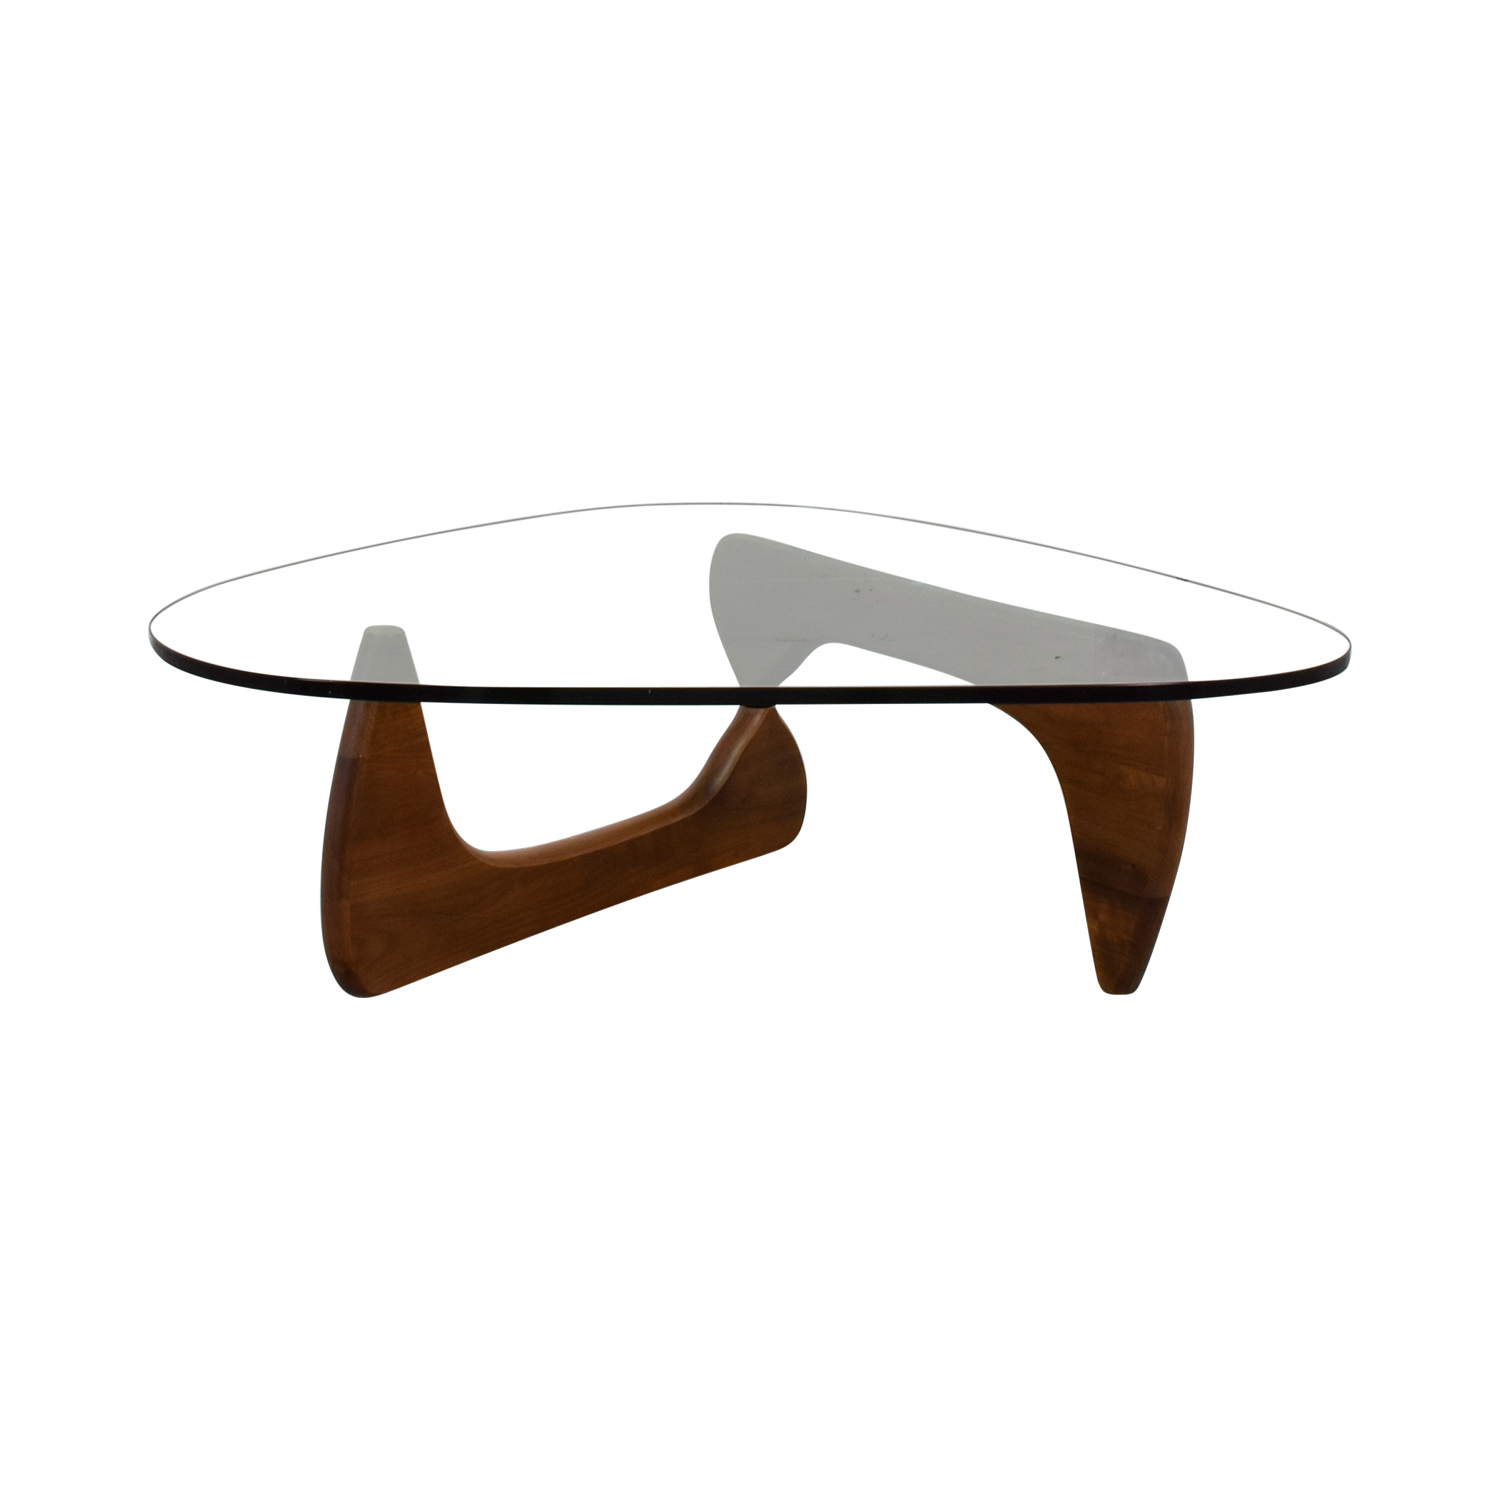 Noguchi Noguchi Walnut and Glass Coffee Table Signed discount